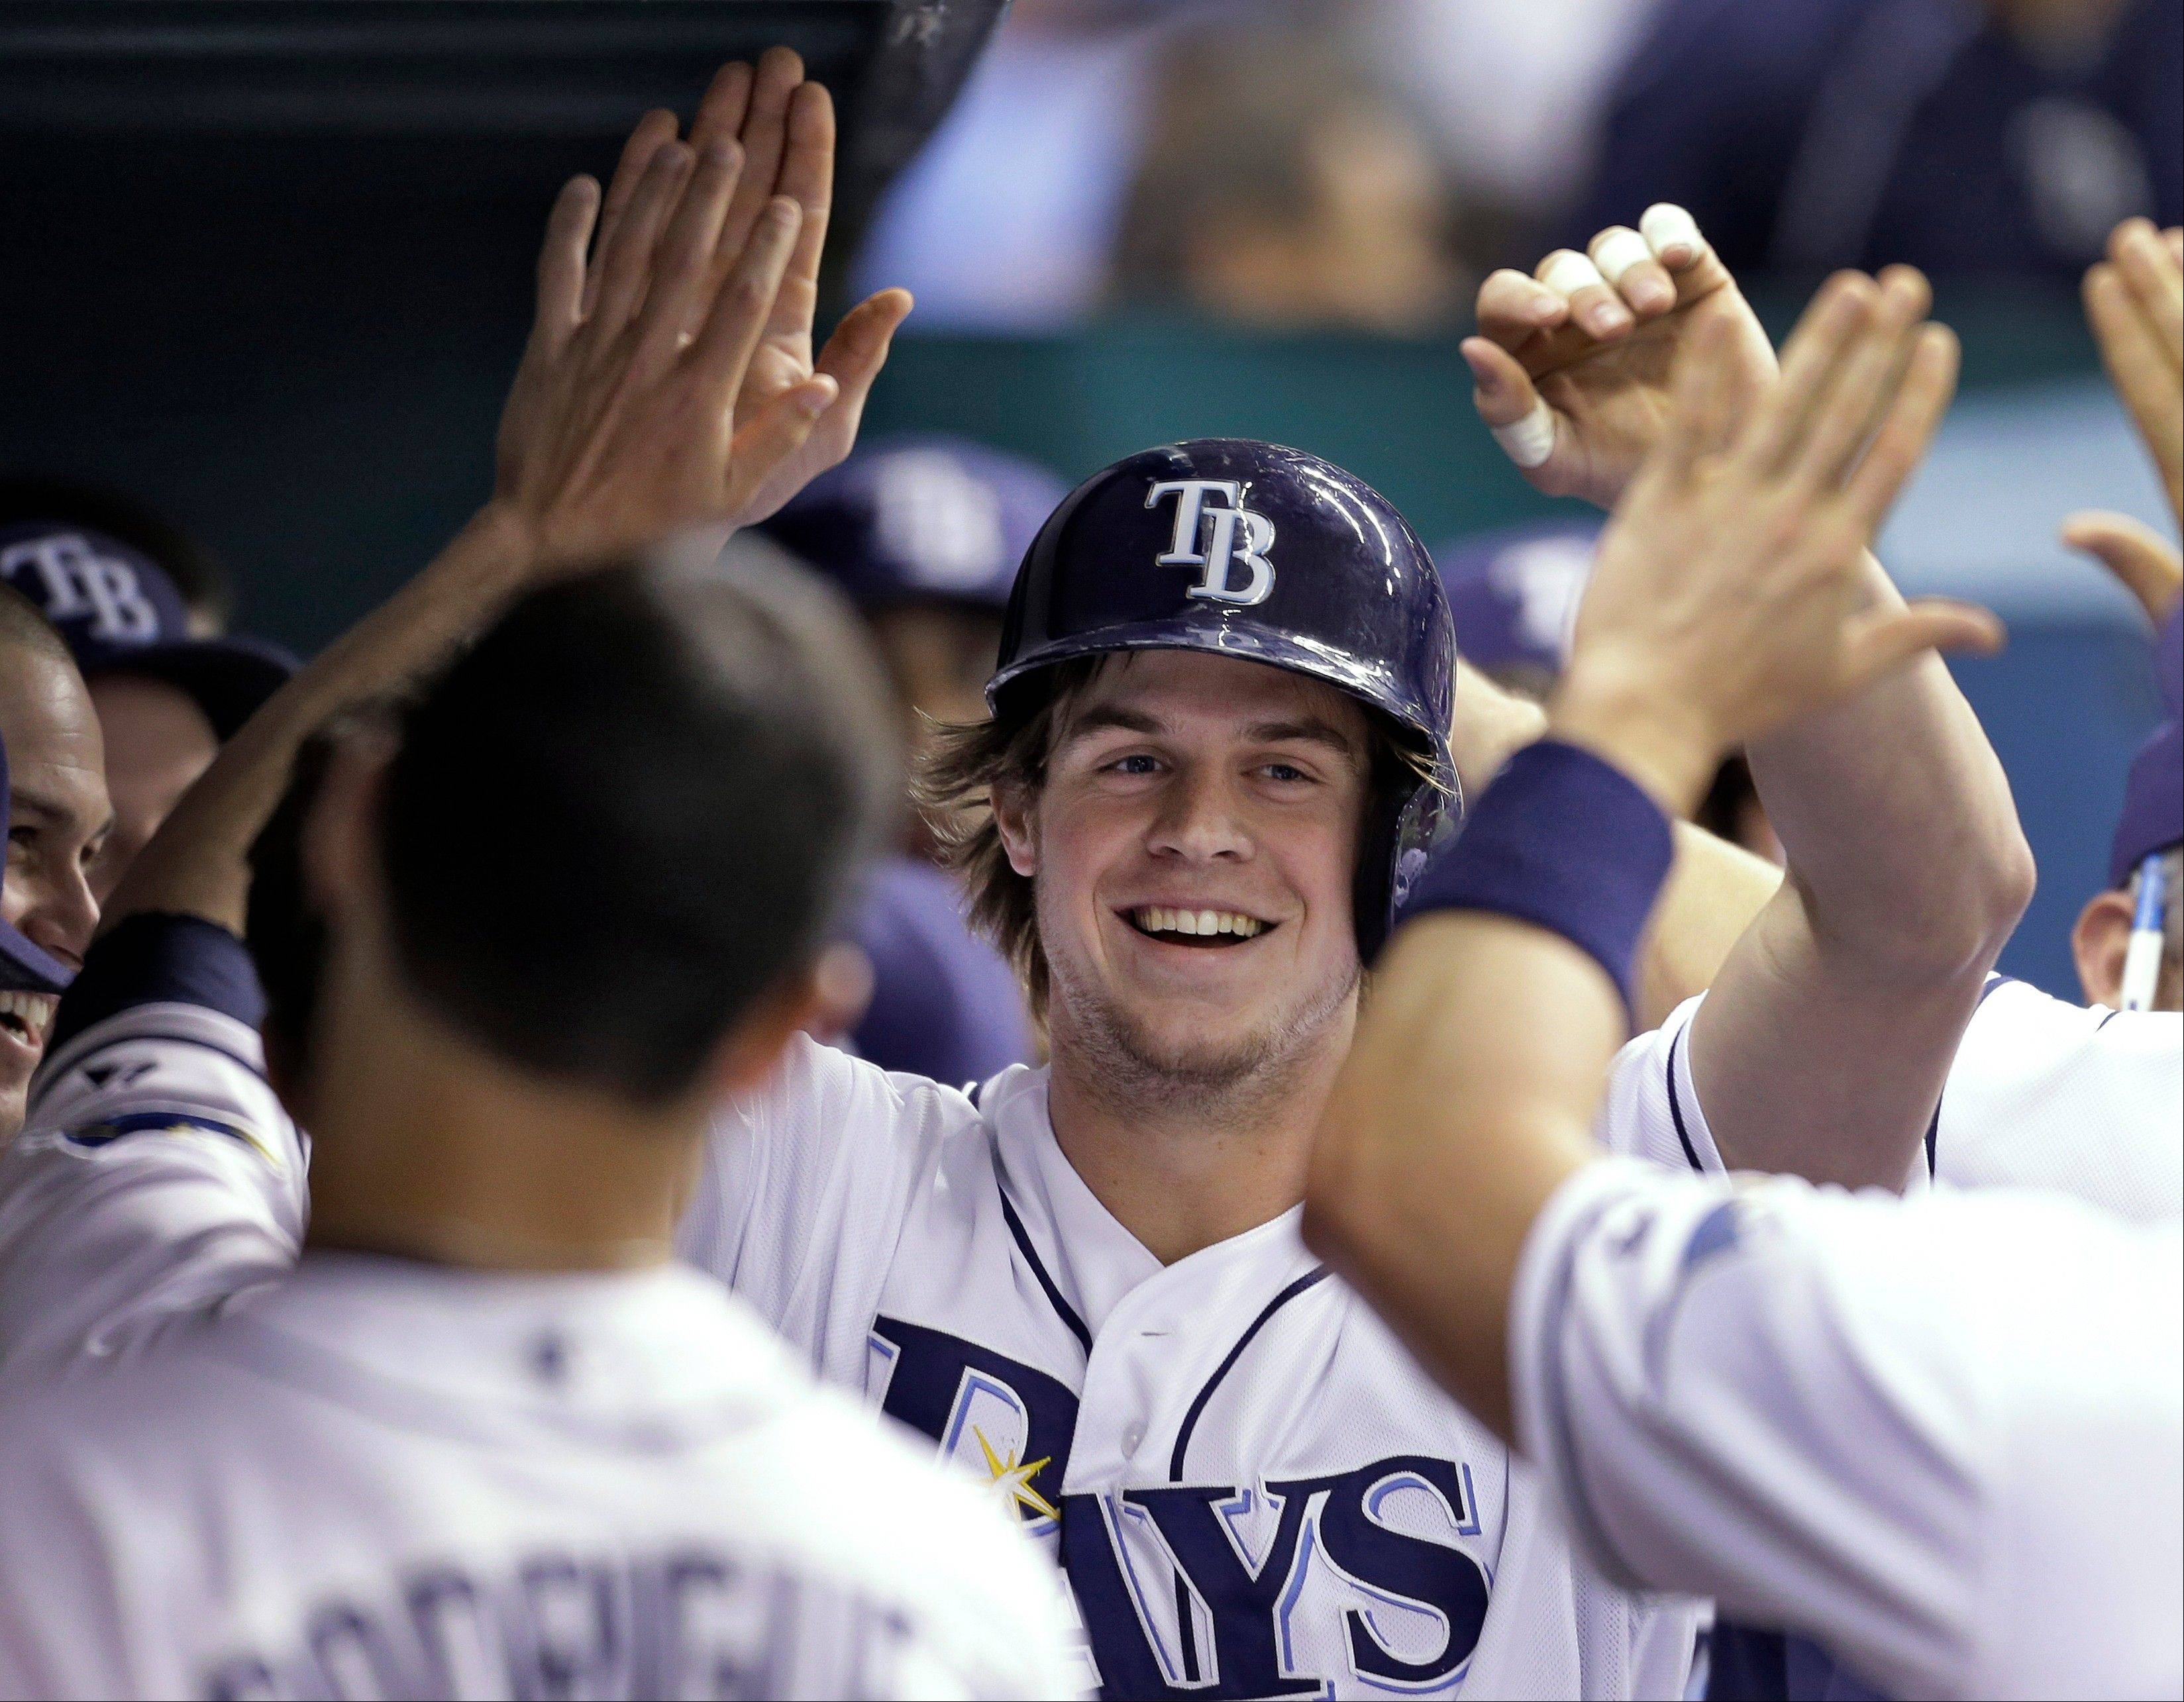 Tampa Bay's Wil Myers, center, received 23 of 30 first-place votes for AL Rookie of the Year.